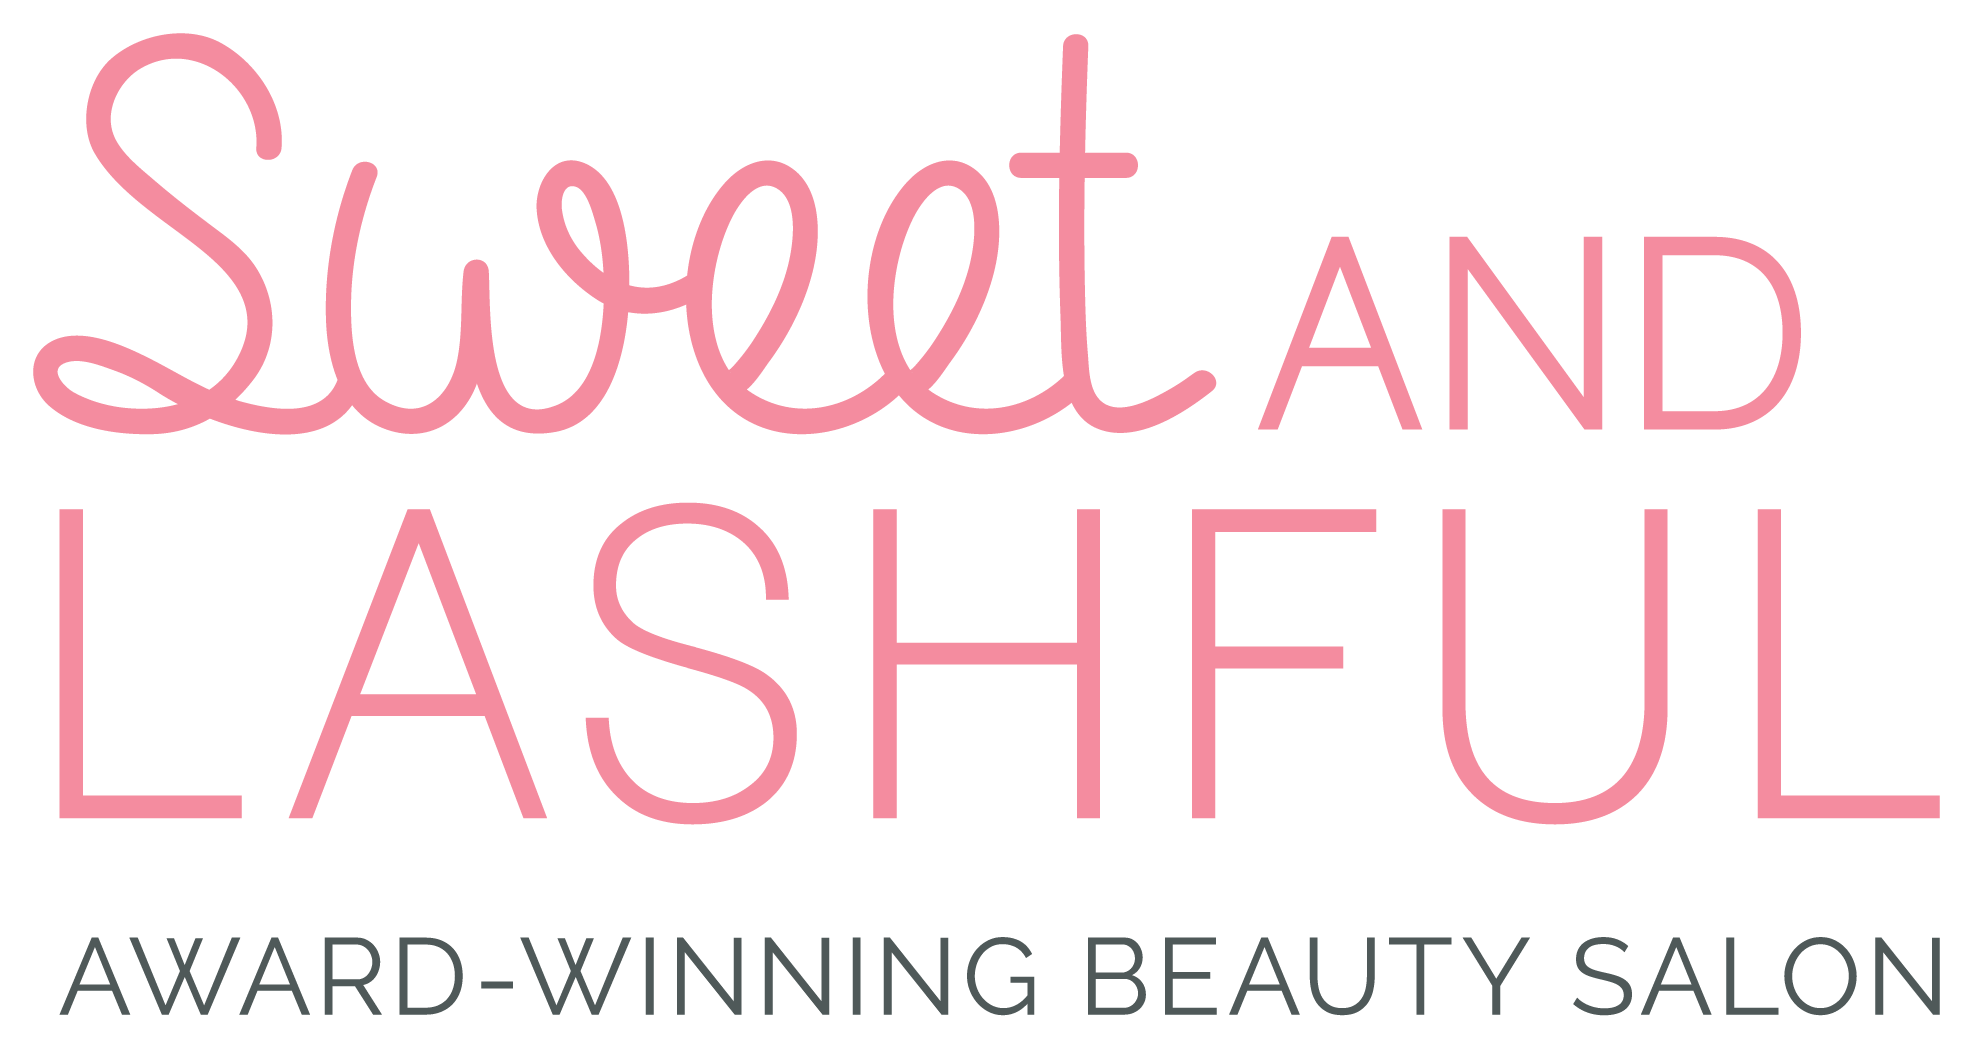 Sweet & Lashful | Award-Winning Beauty Salon and Spa